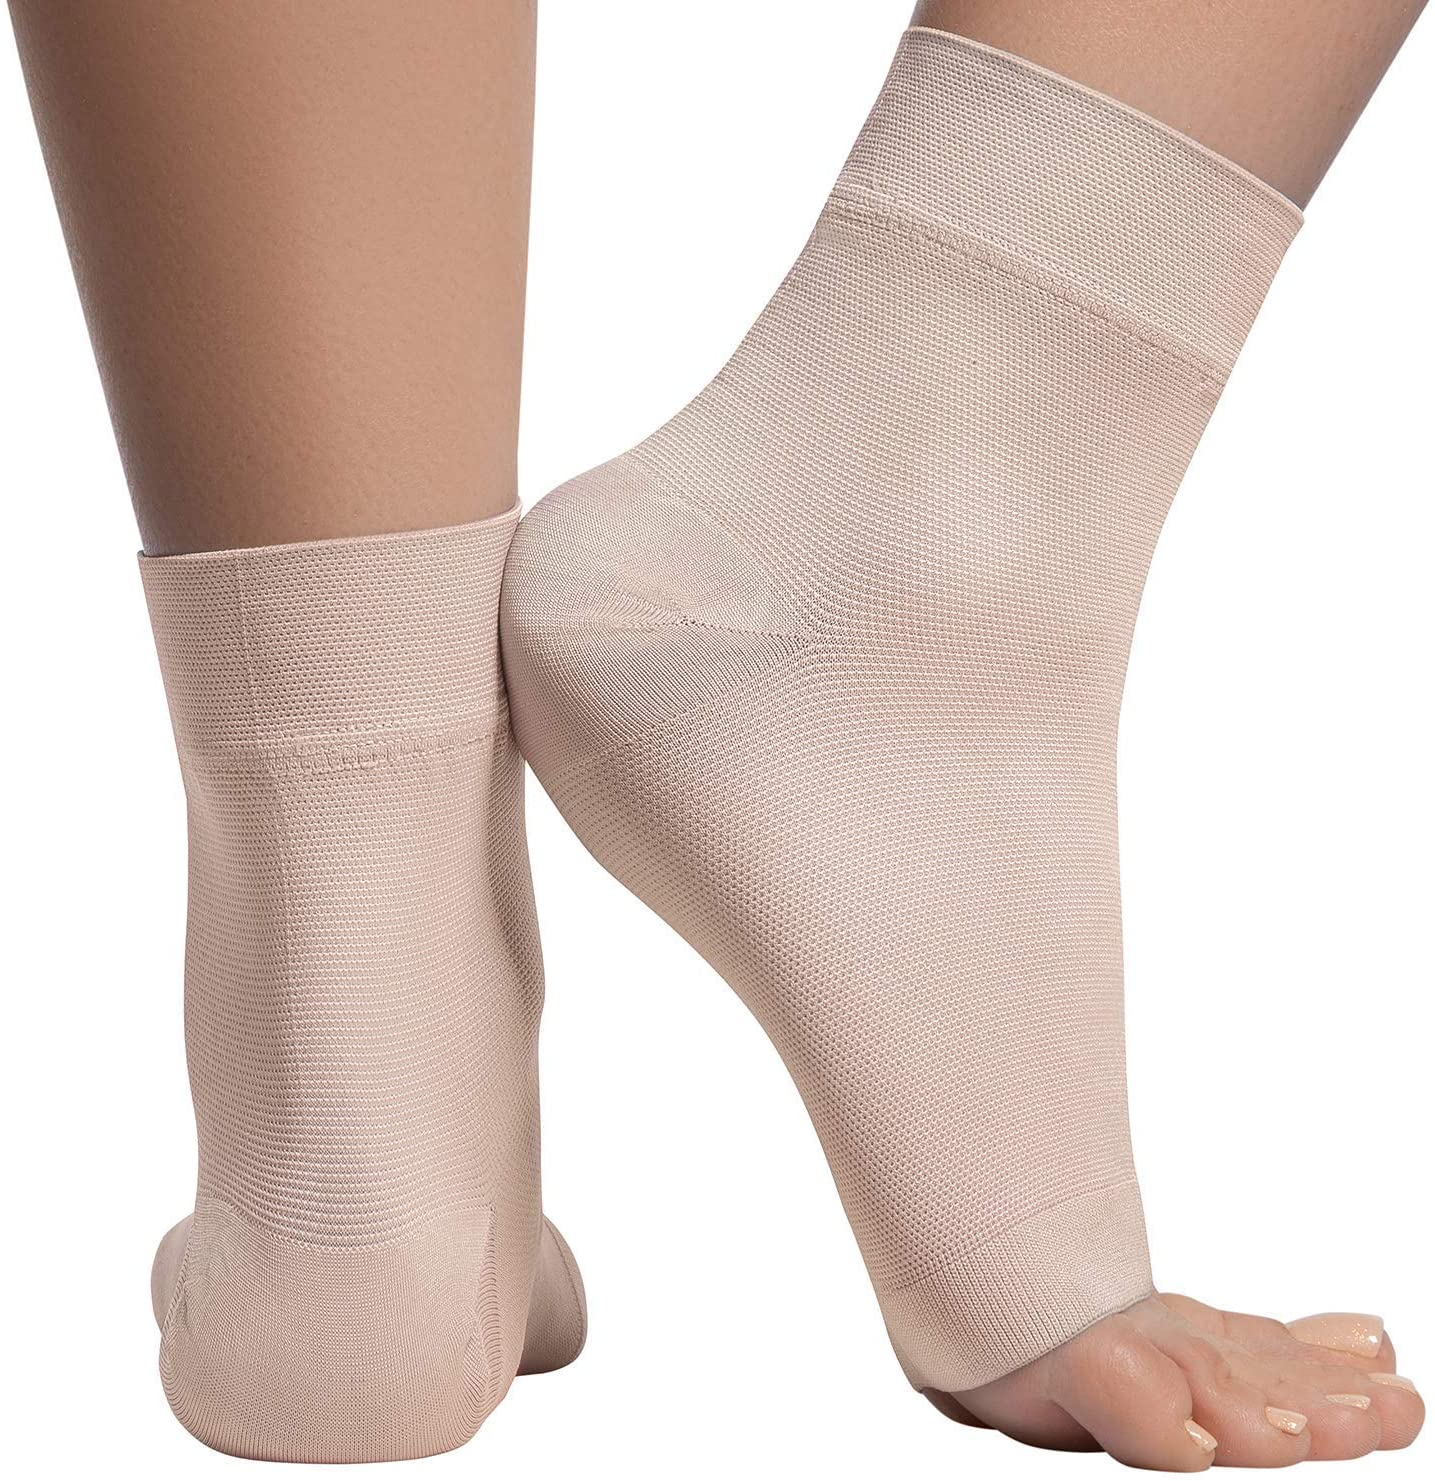 Ankle Cheap SALE Start Compression Sleeve - 20-30mmhg Max 69% OFF Toe Ð¡ompression Soc Open